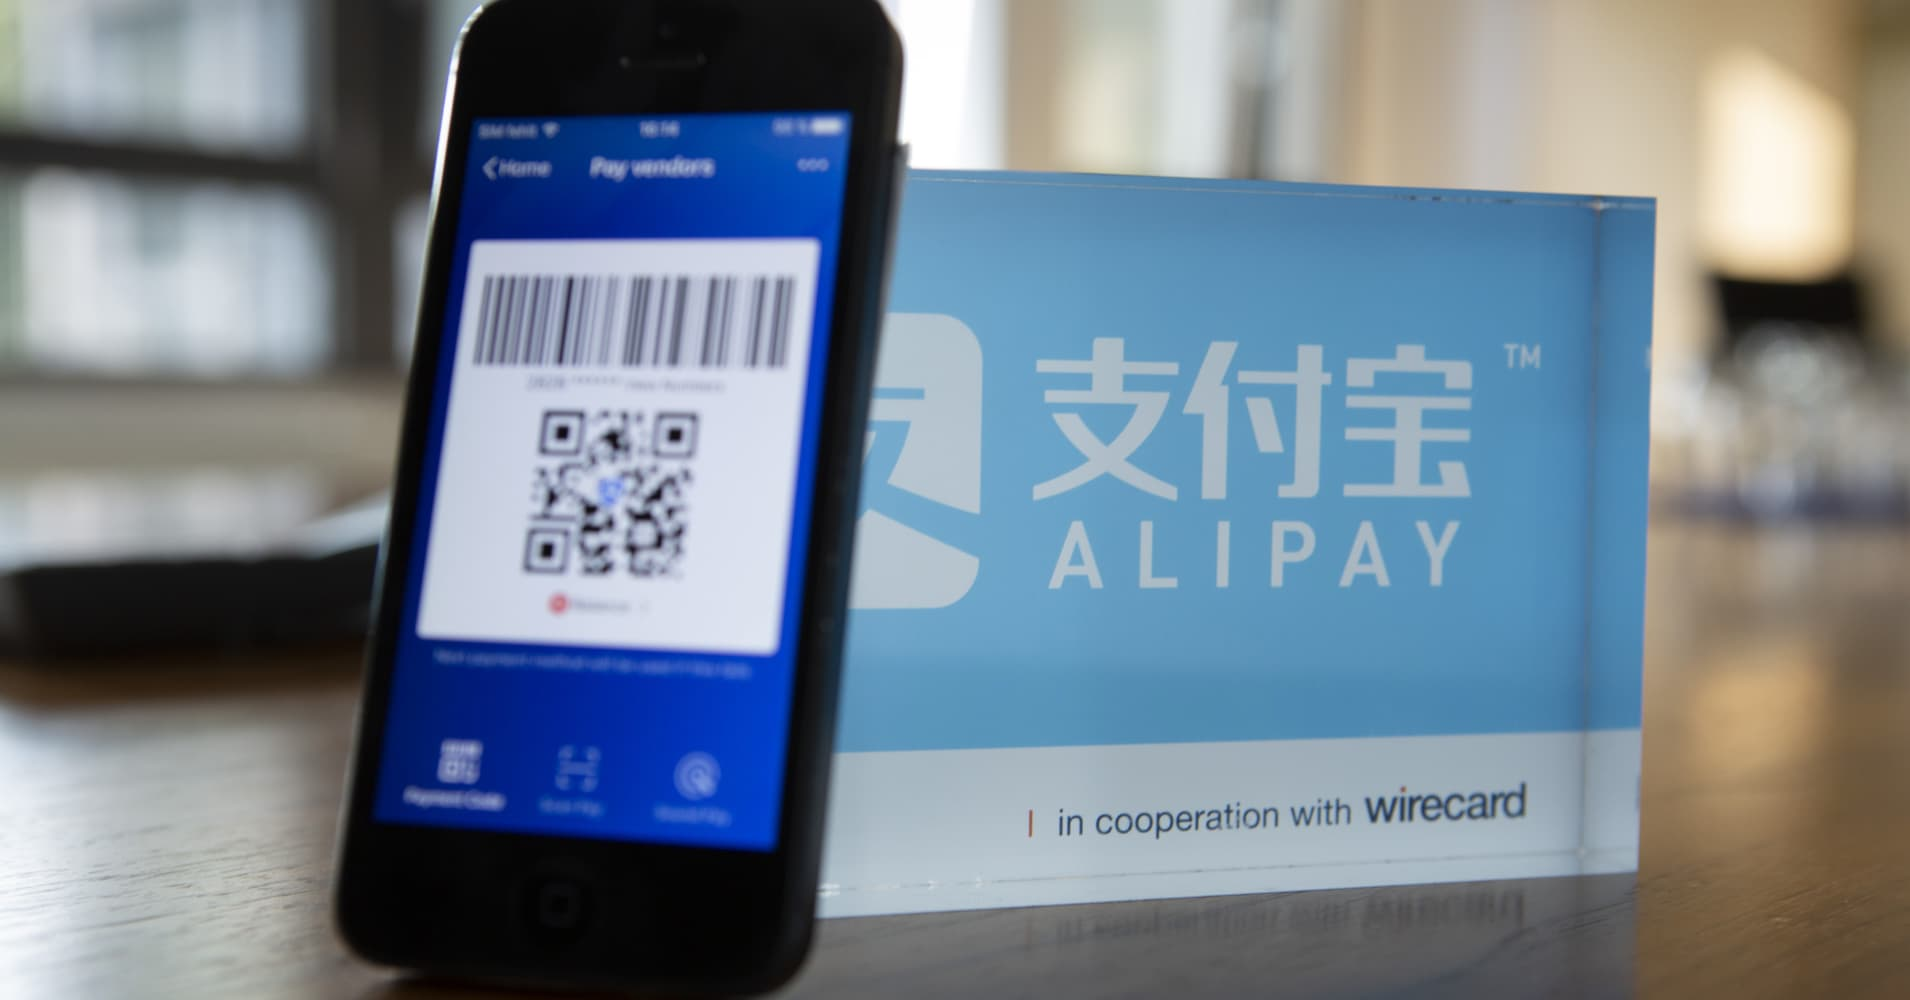 Ant Financial's Alipay strikes payments deal with soccer body UEFA as it looks for global boost